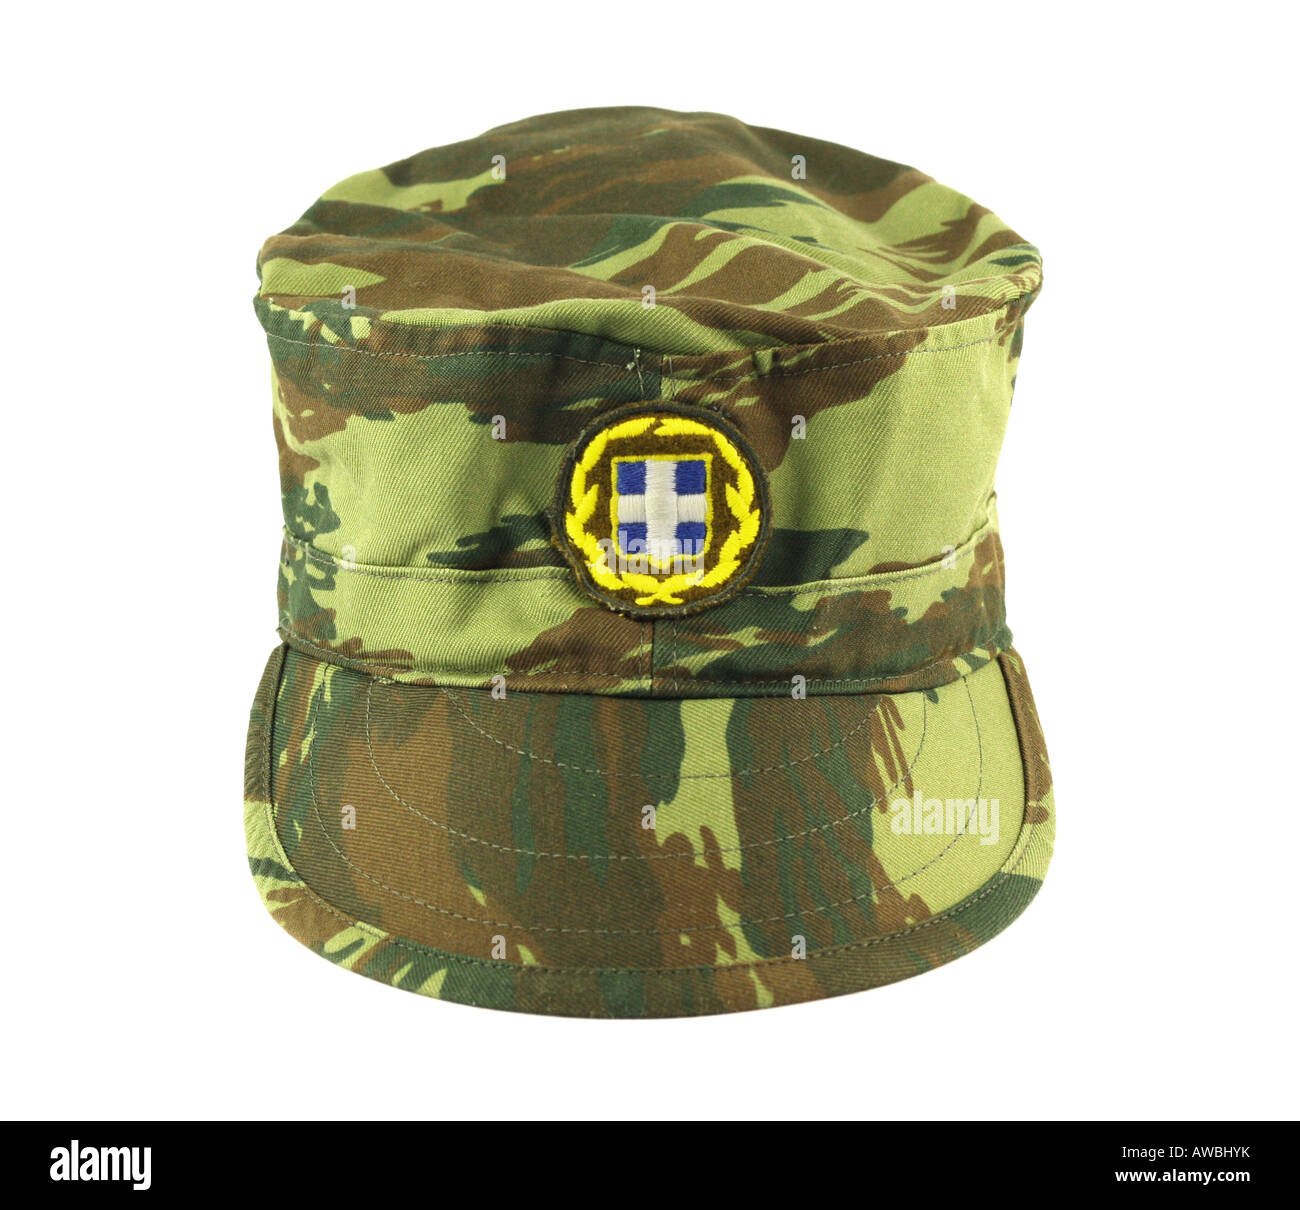 Army Hat Stock Photos & Army Hat Stock Images - Alamy